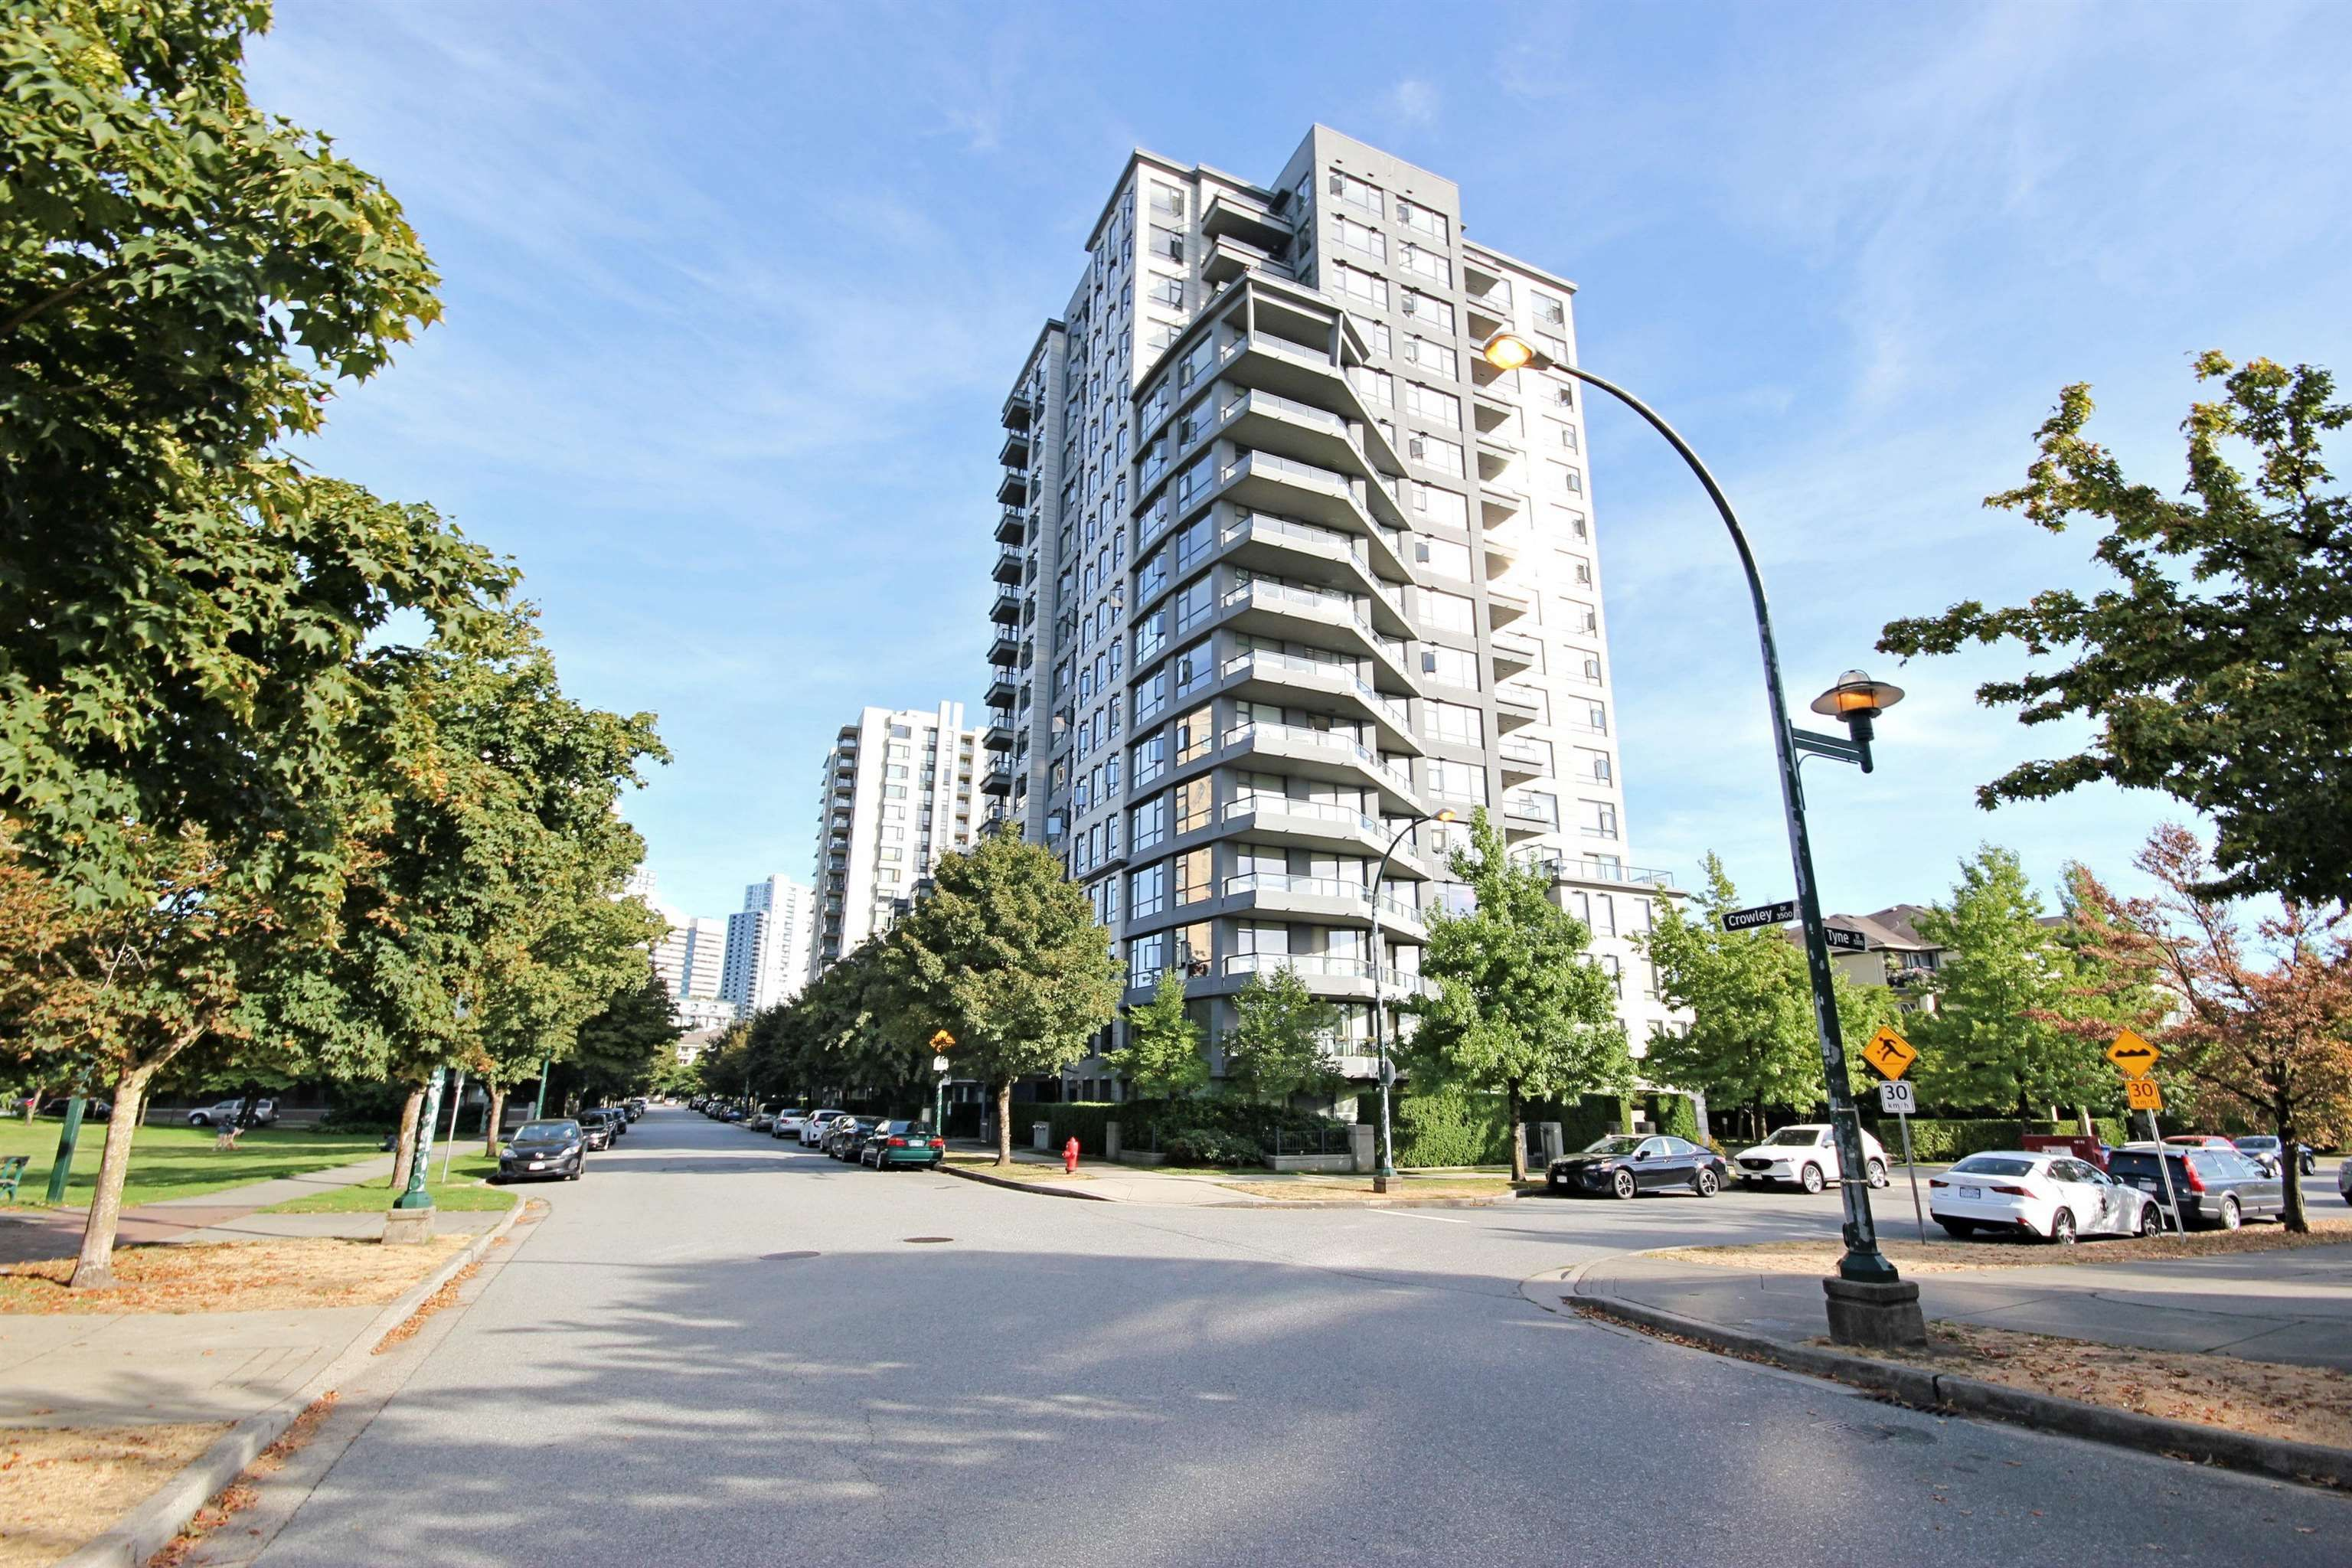 """Main Photo: 1001 3520 CROWLEY Drive in Vancouver: Collingwood VE Condo for sale in """"Millenio by Bosa"""" (Vancouver East)  : MLS®# R2609901"""